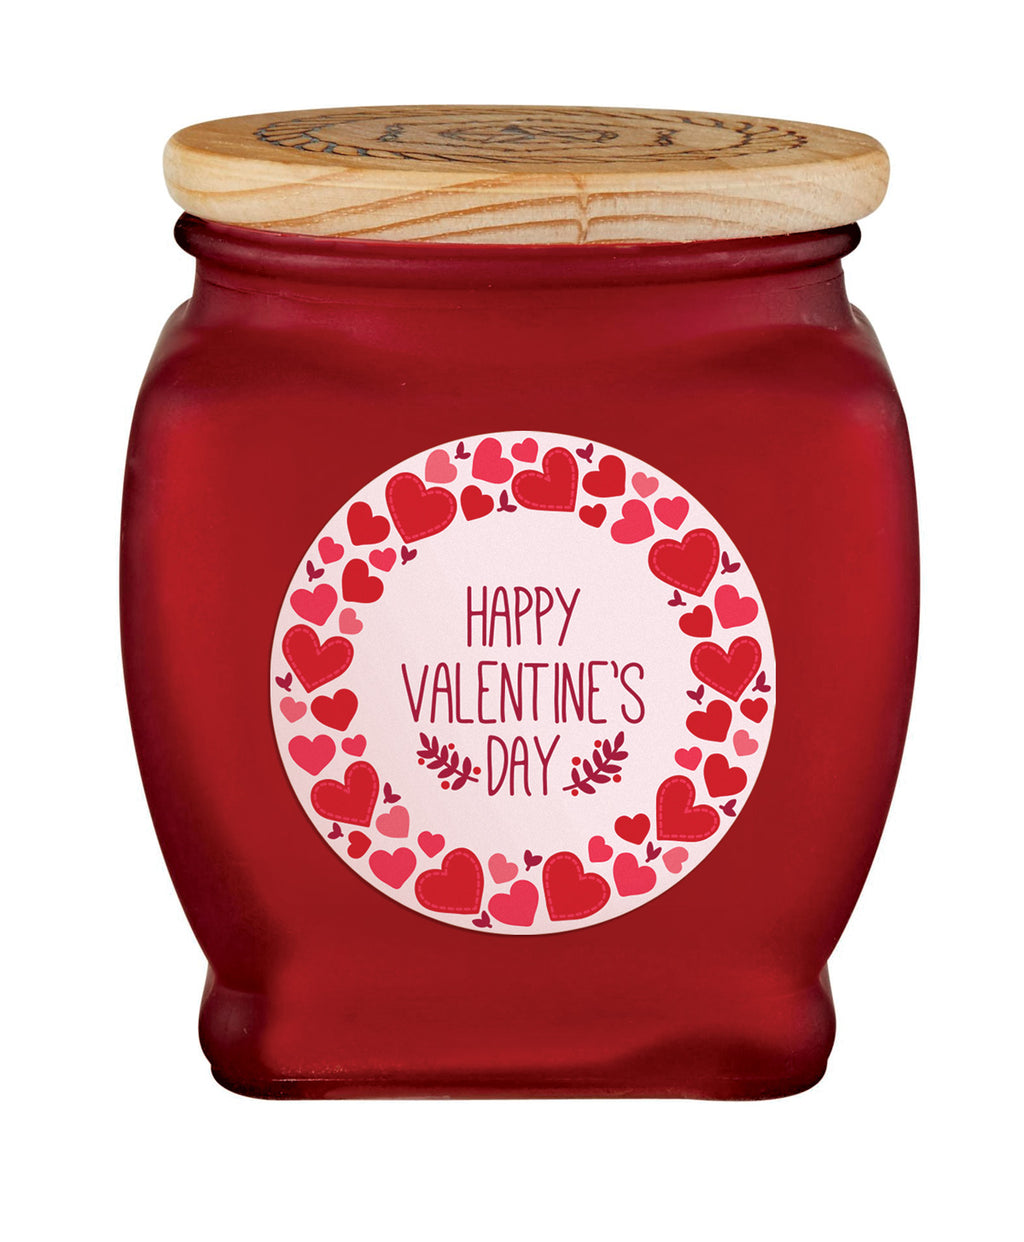 Happy Valentine's Day Candle